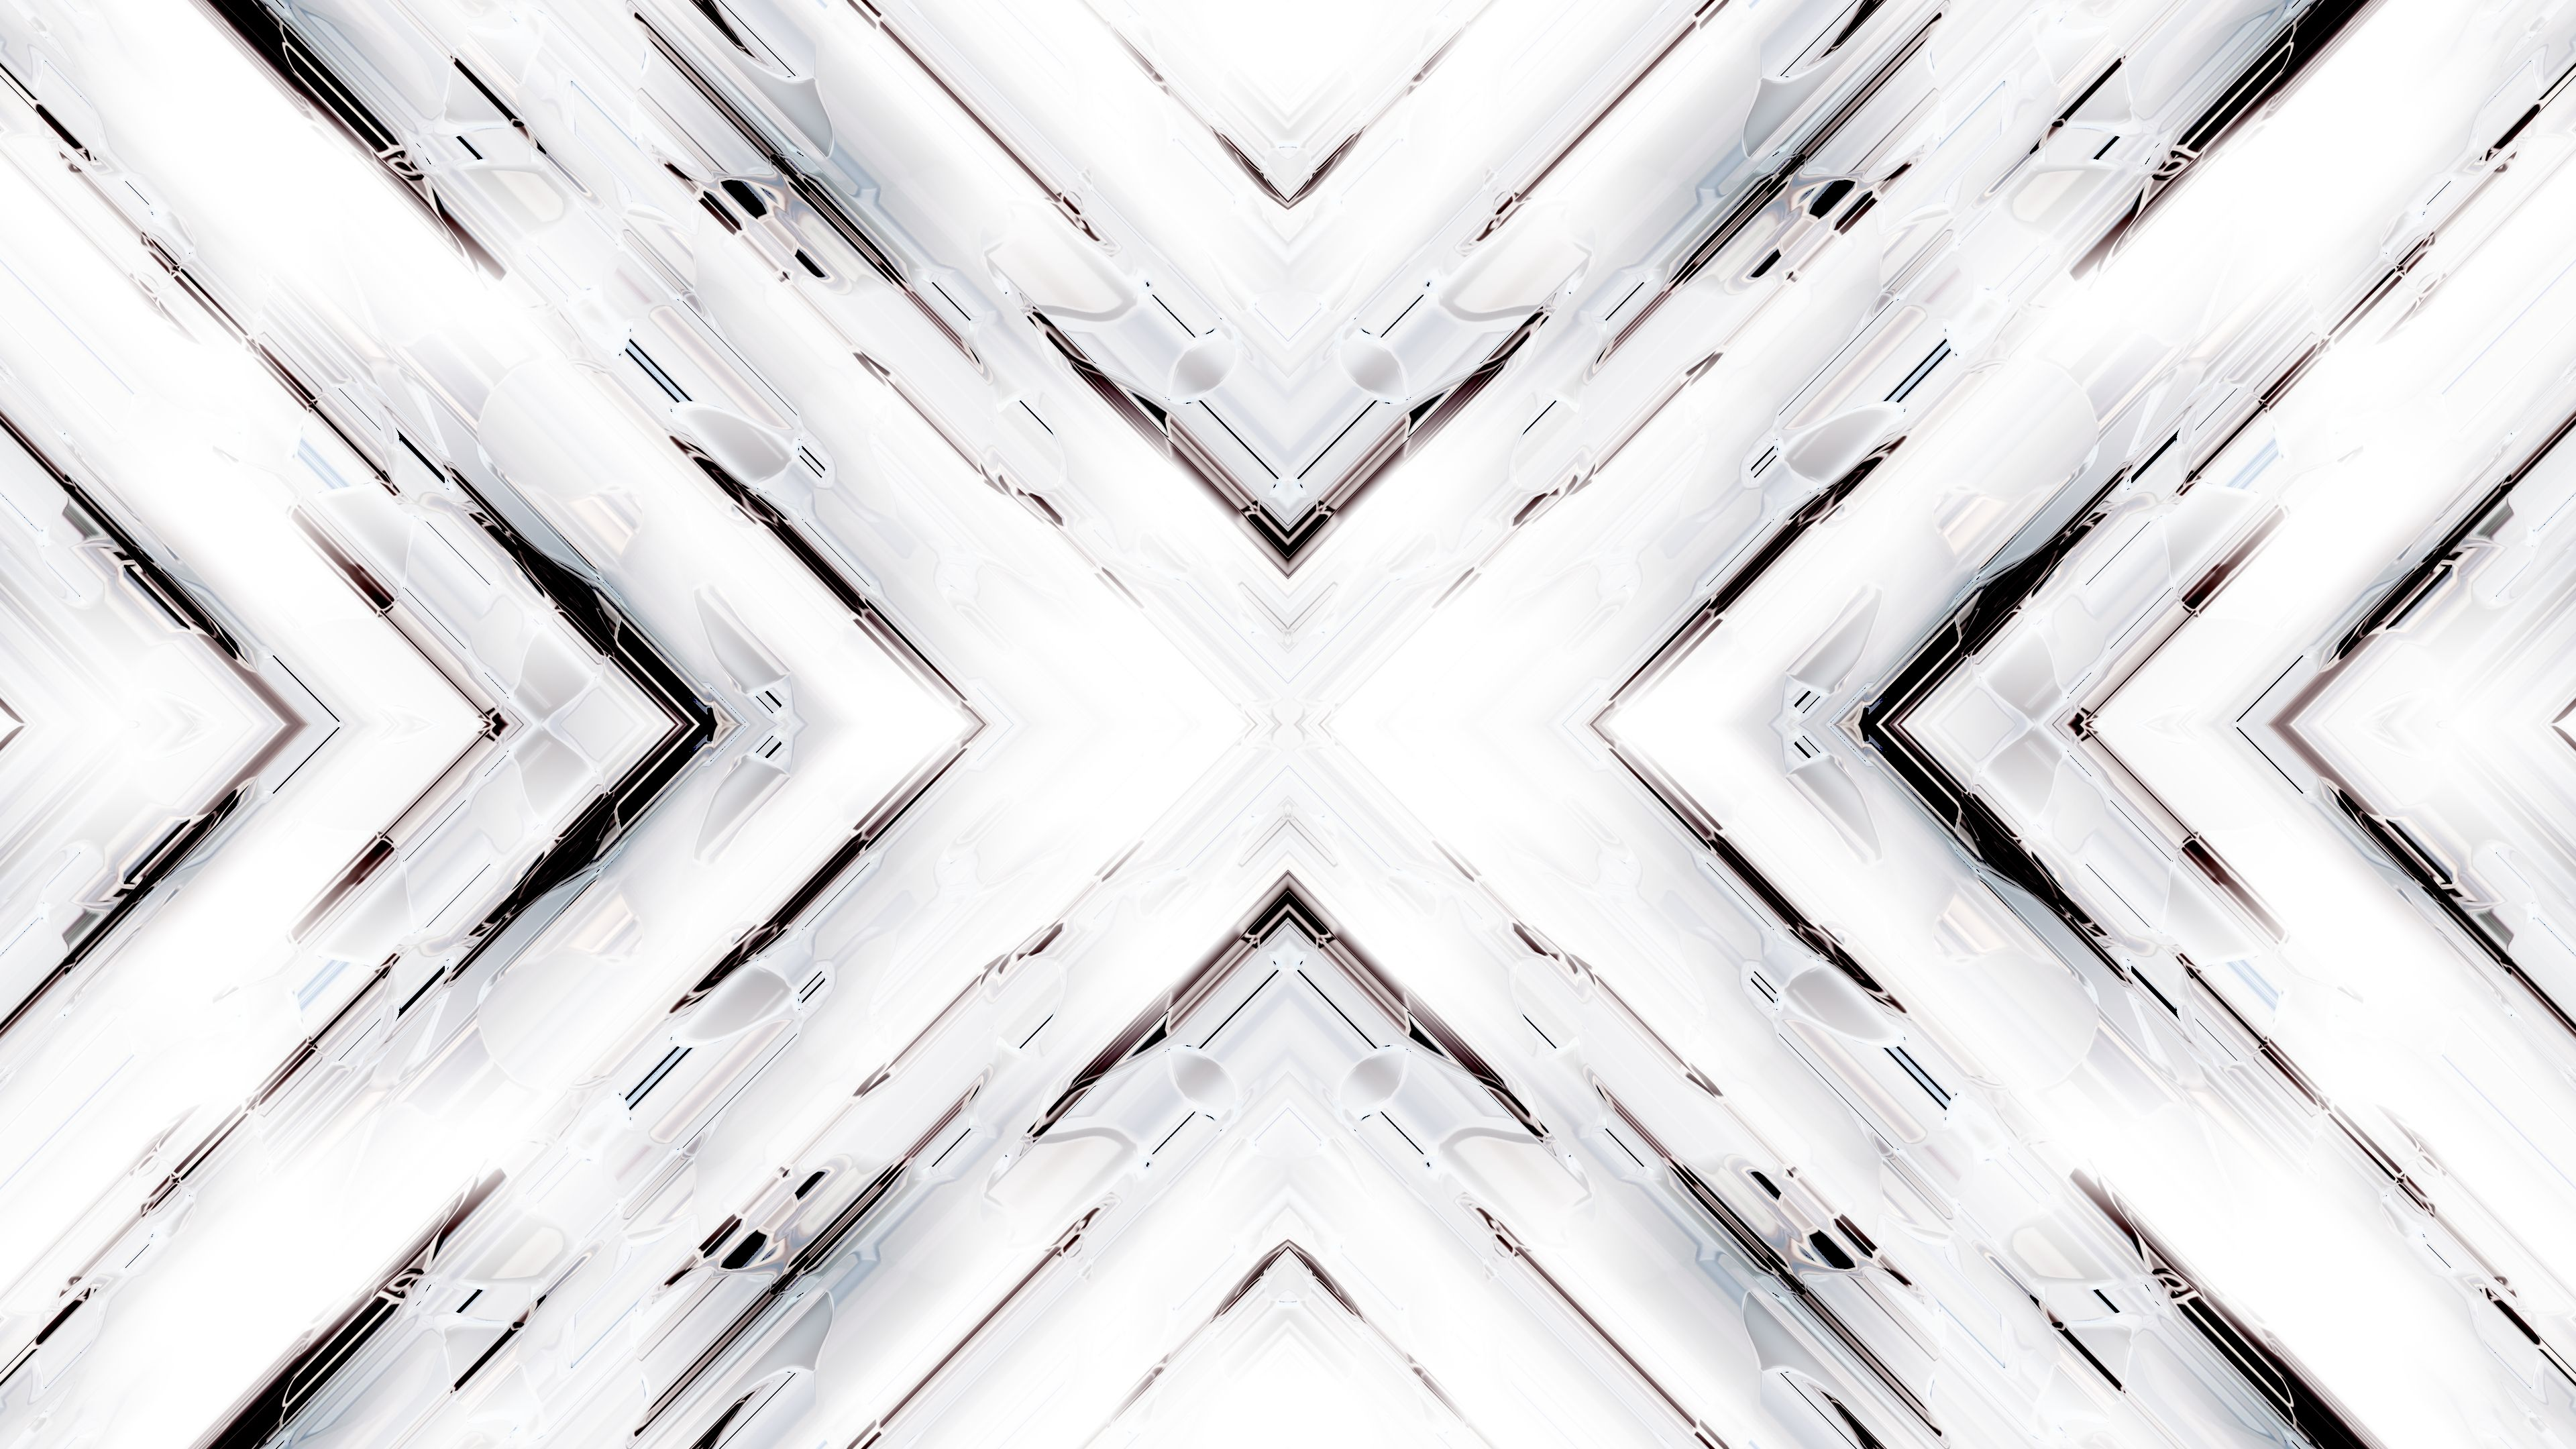 White Render Abstract Art Hd Wallpapers Abstract Wallpapers 4k Wallpapers White Wallpaper Abstract Wallpaper Abstract Abstract white wallpaper light